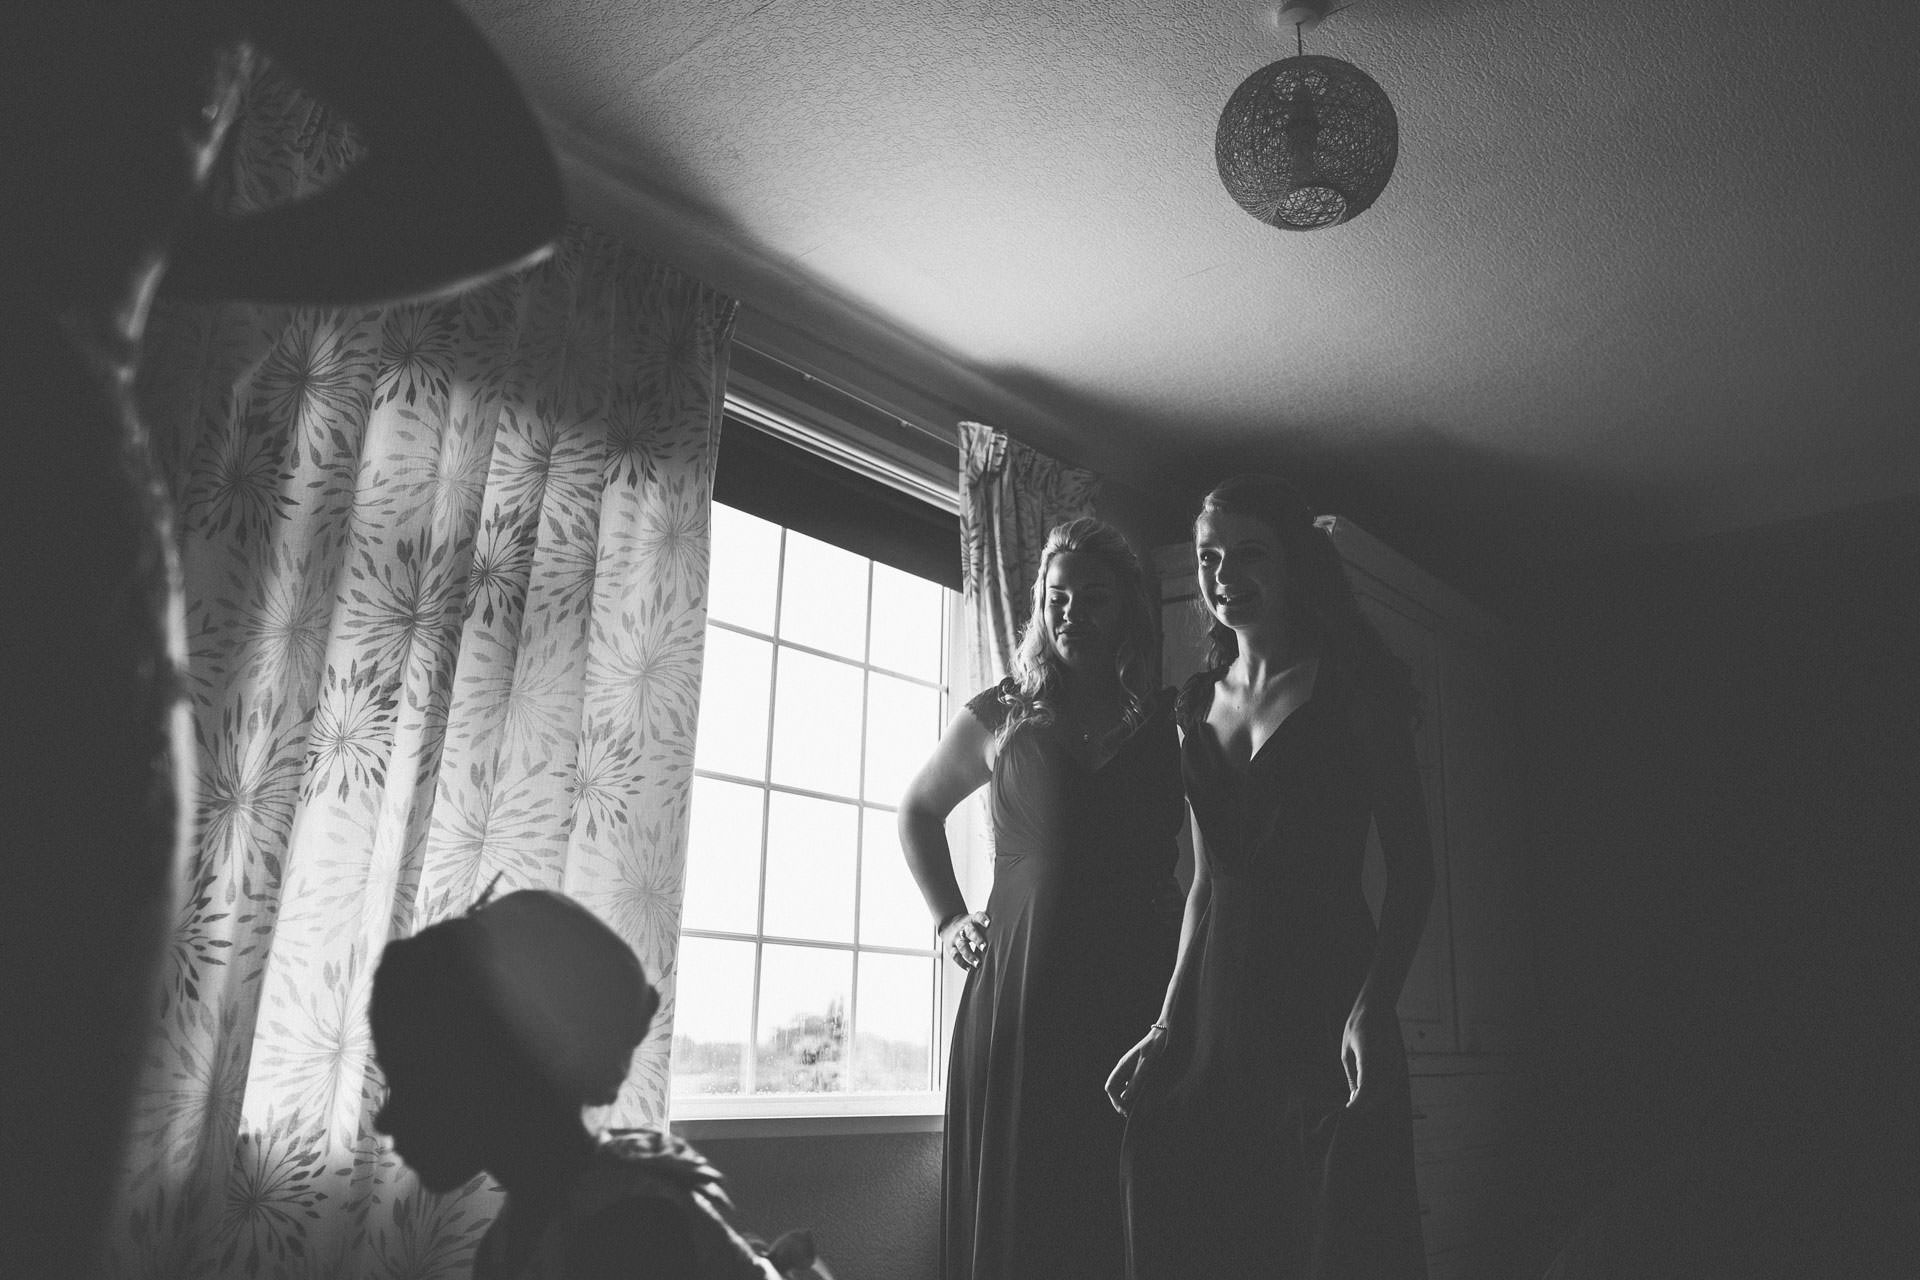 Best wedding photography 2016 - bridesmaids sorting out the wedding dress